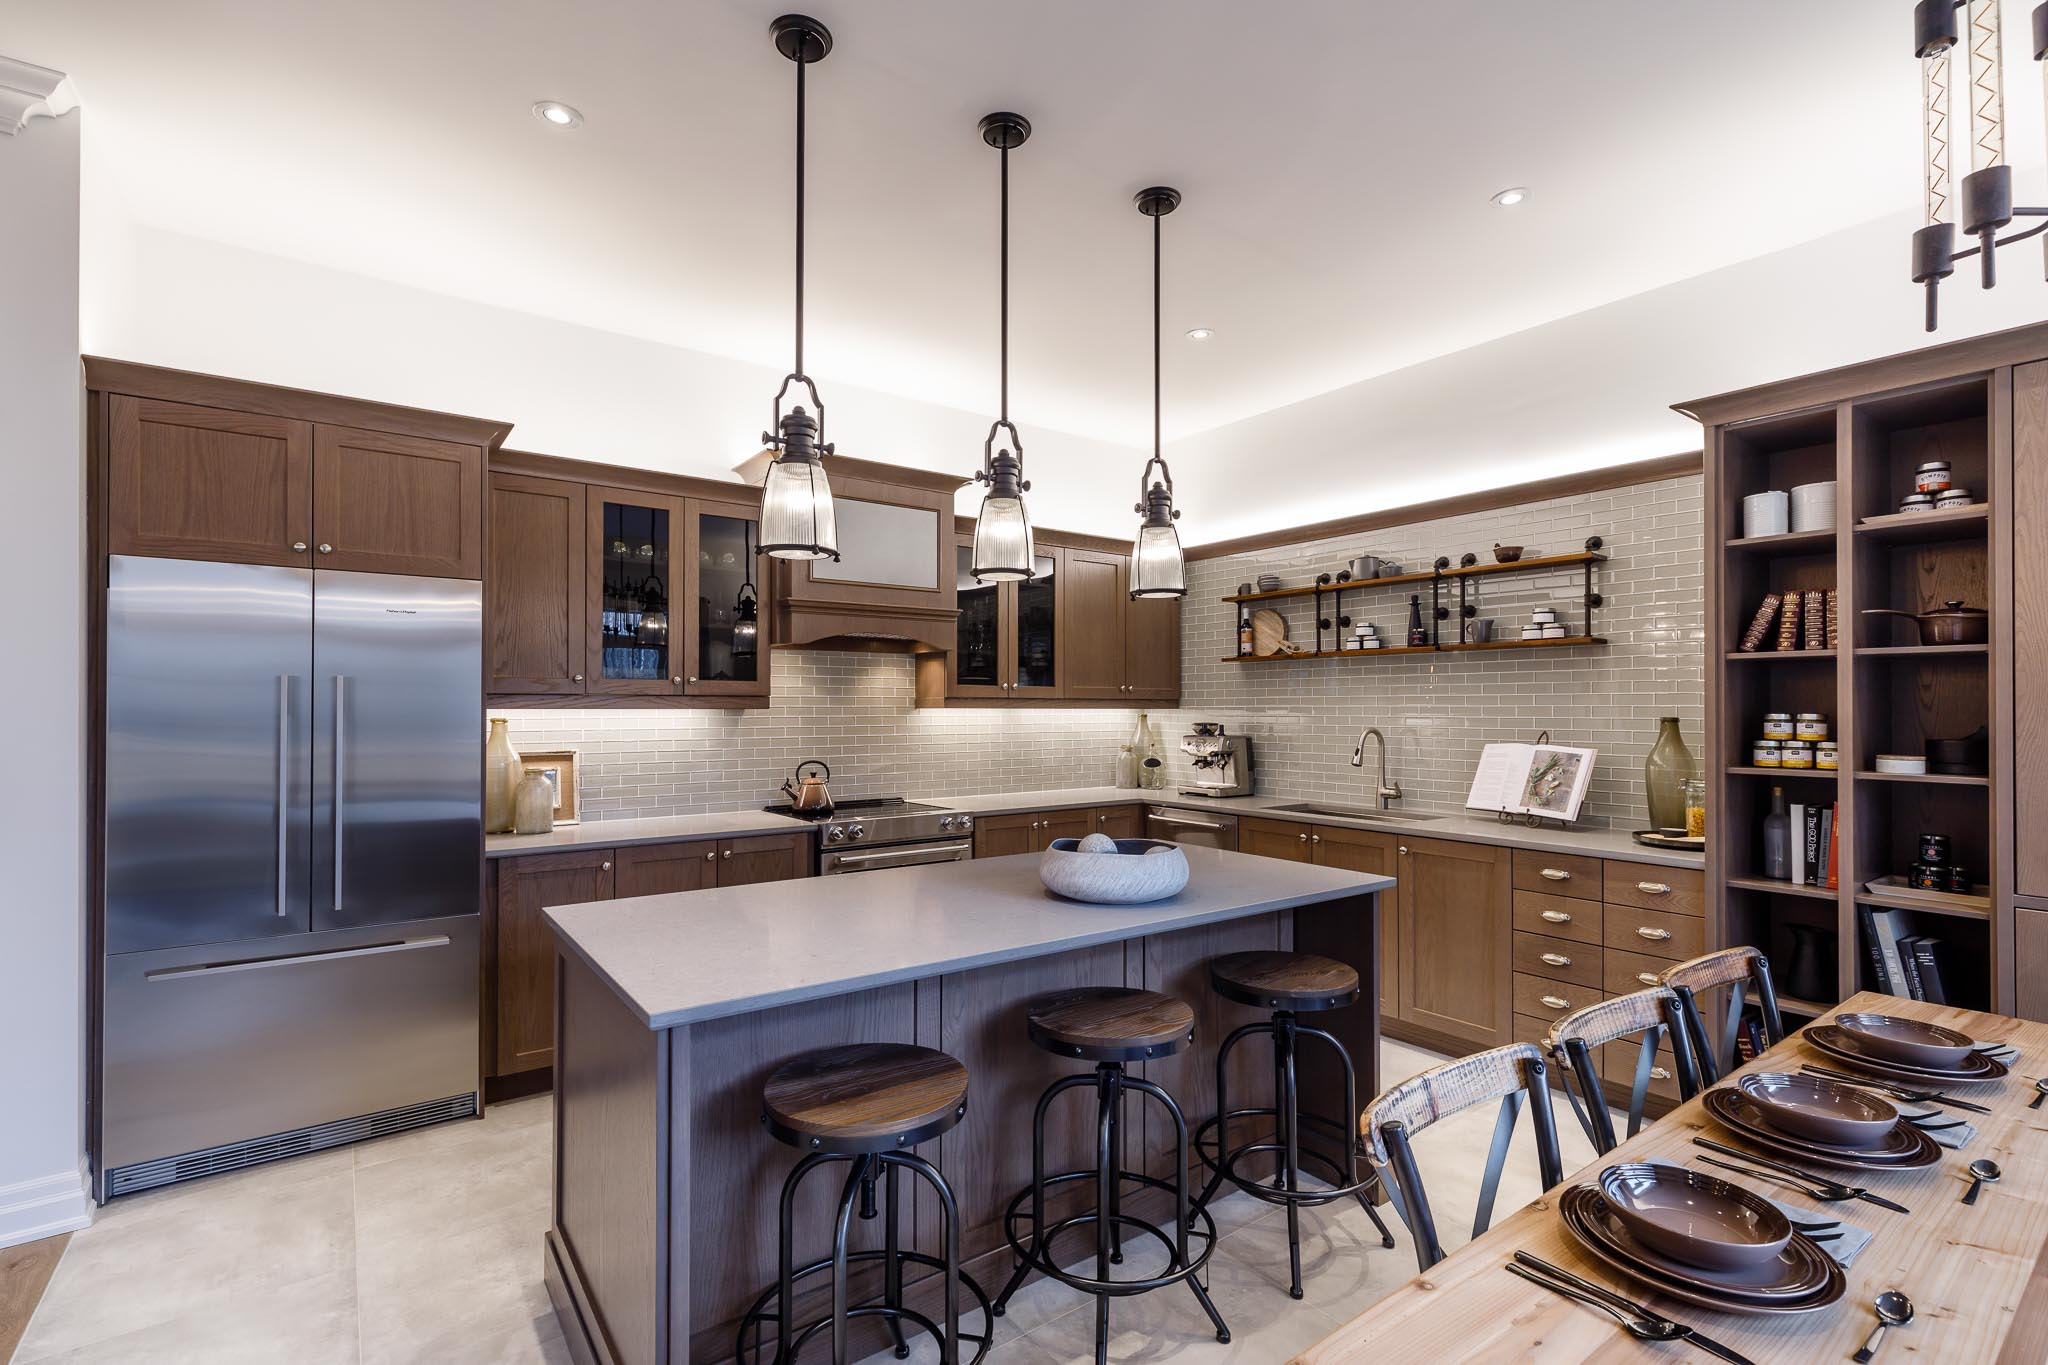 Great Gulf Westfield kitchen with brown cabinetry and industrial lighting and stools